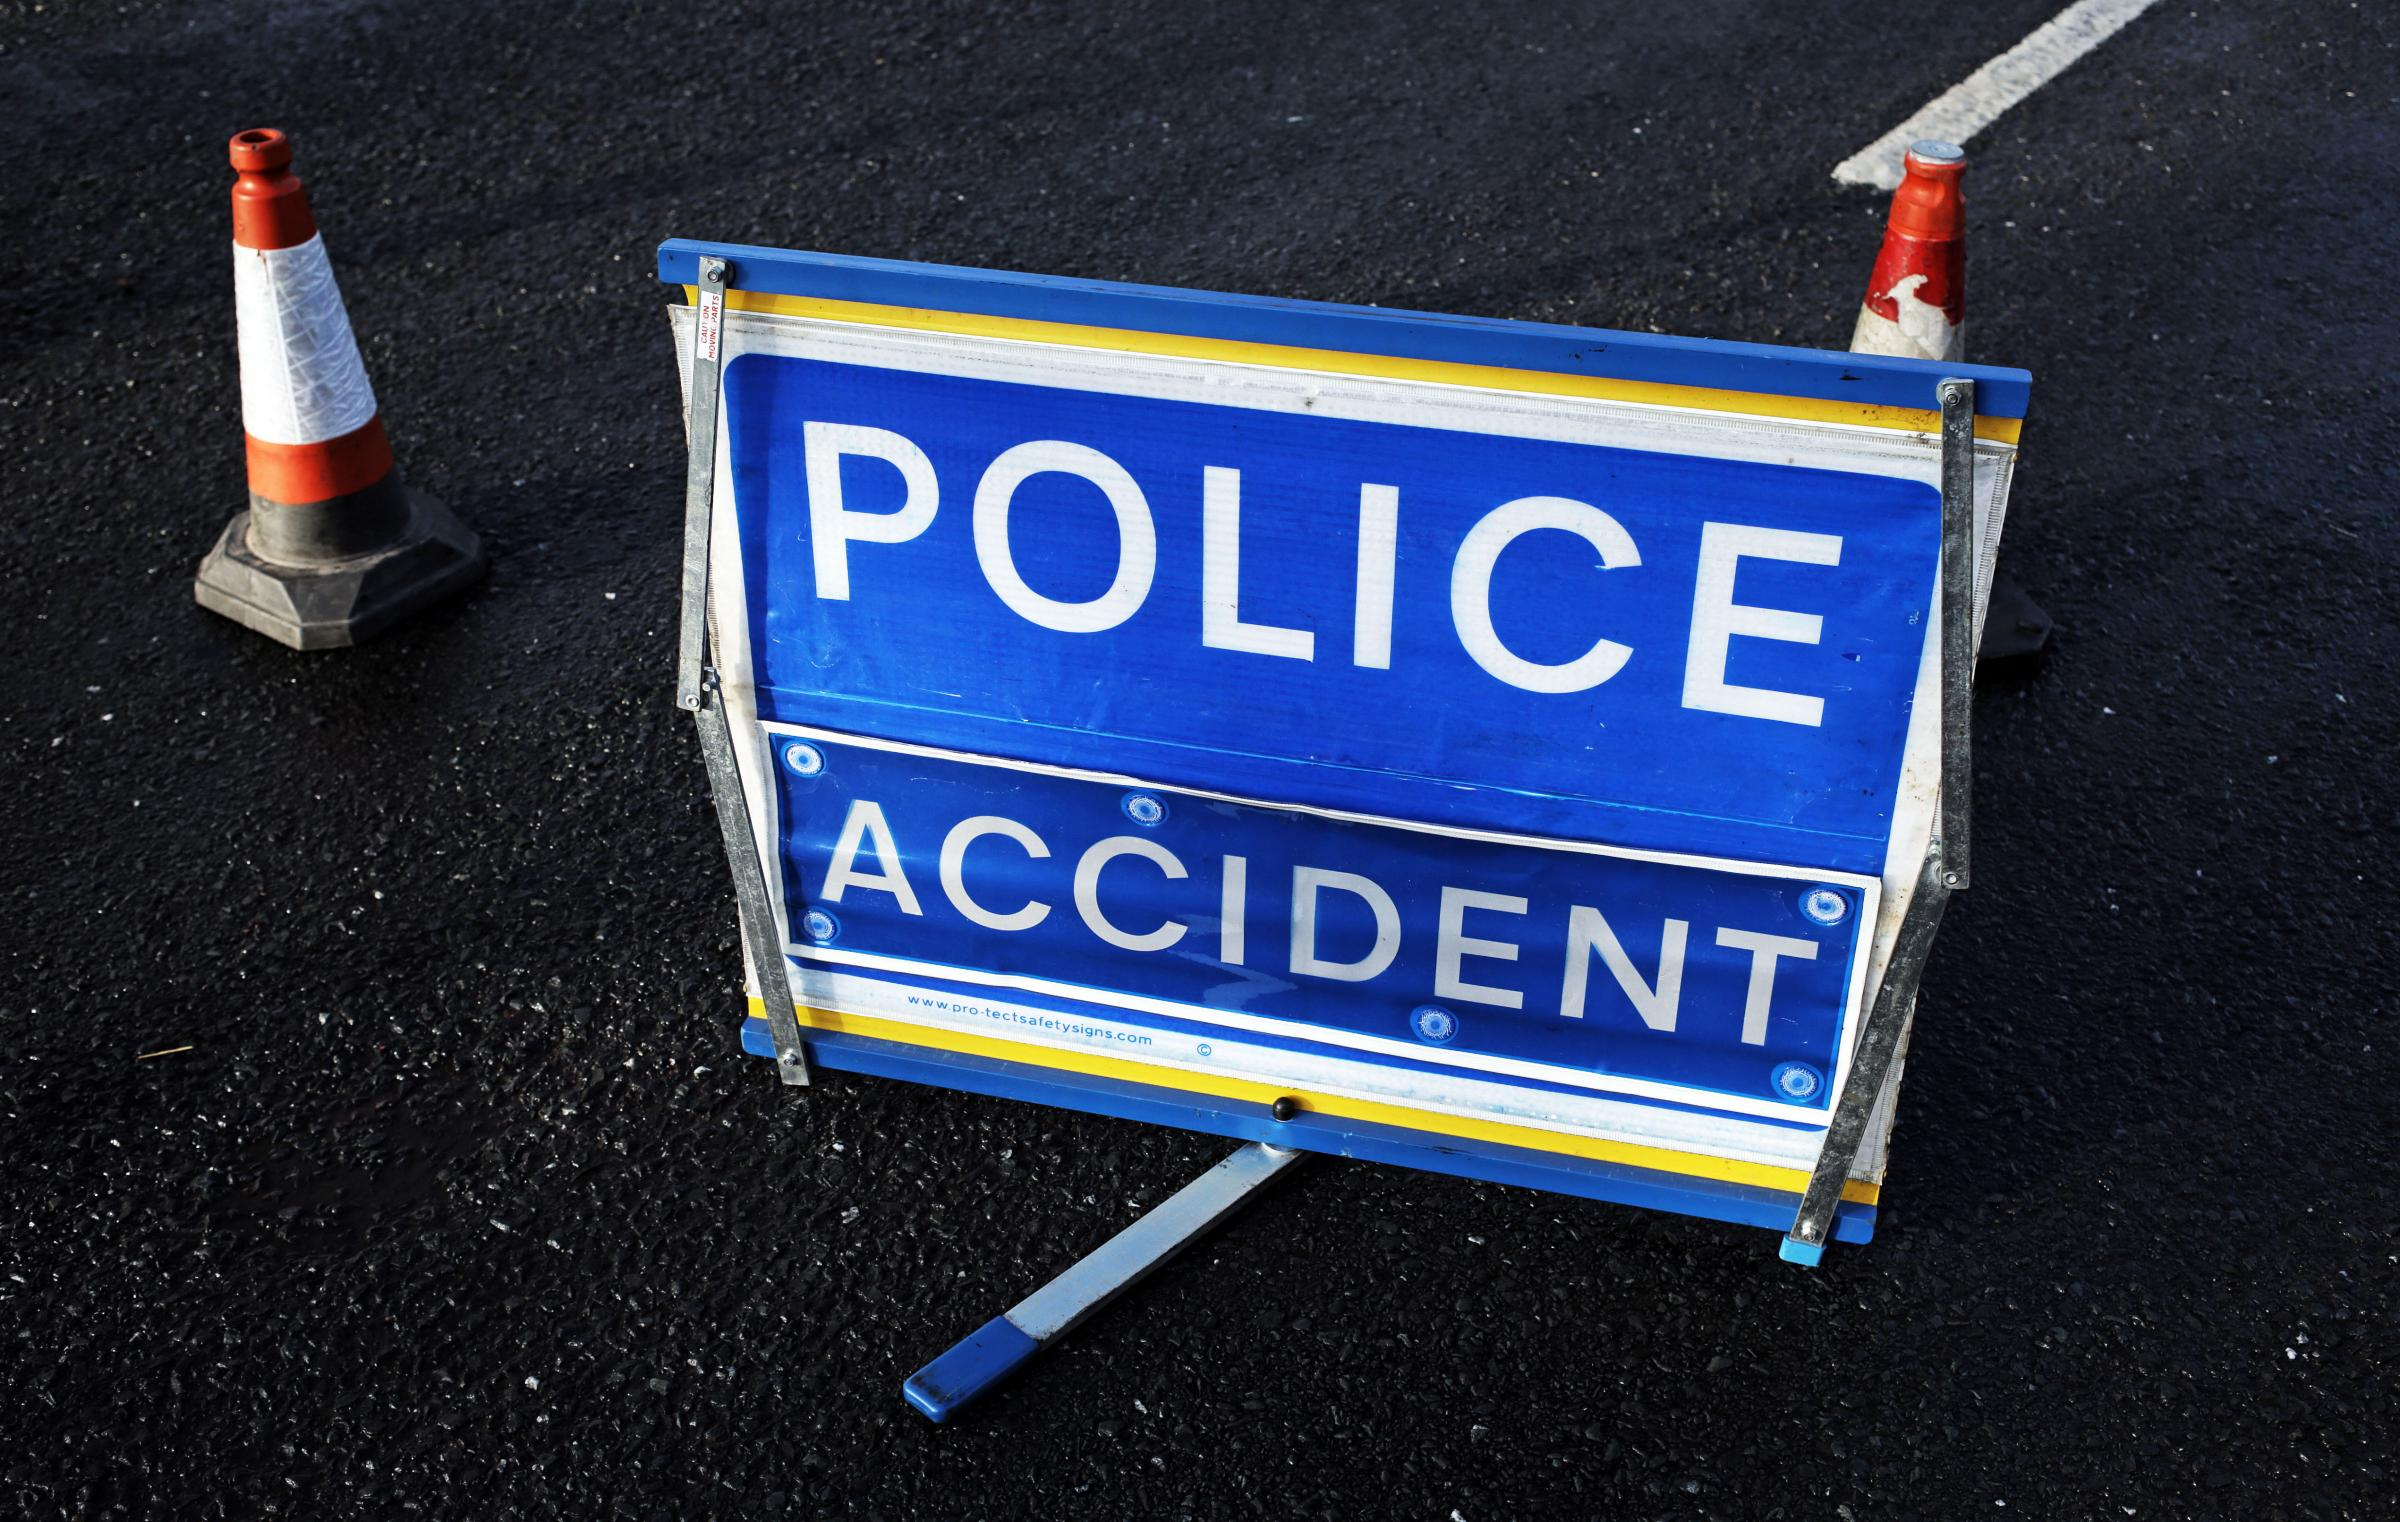 INCIDENT: Emergency services attended the scene of an accident on the A68 involving a car and motorbike